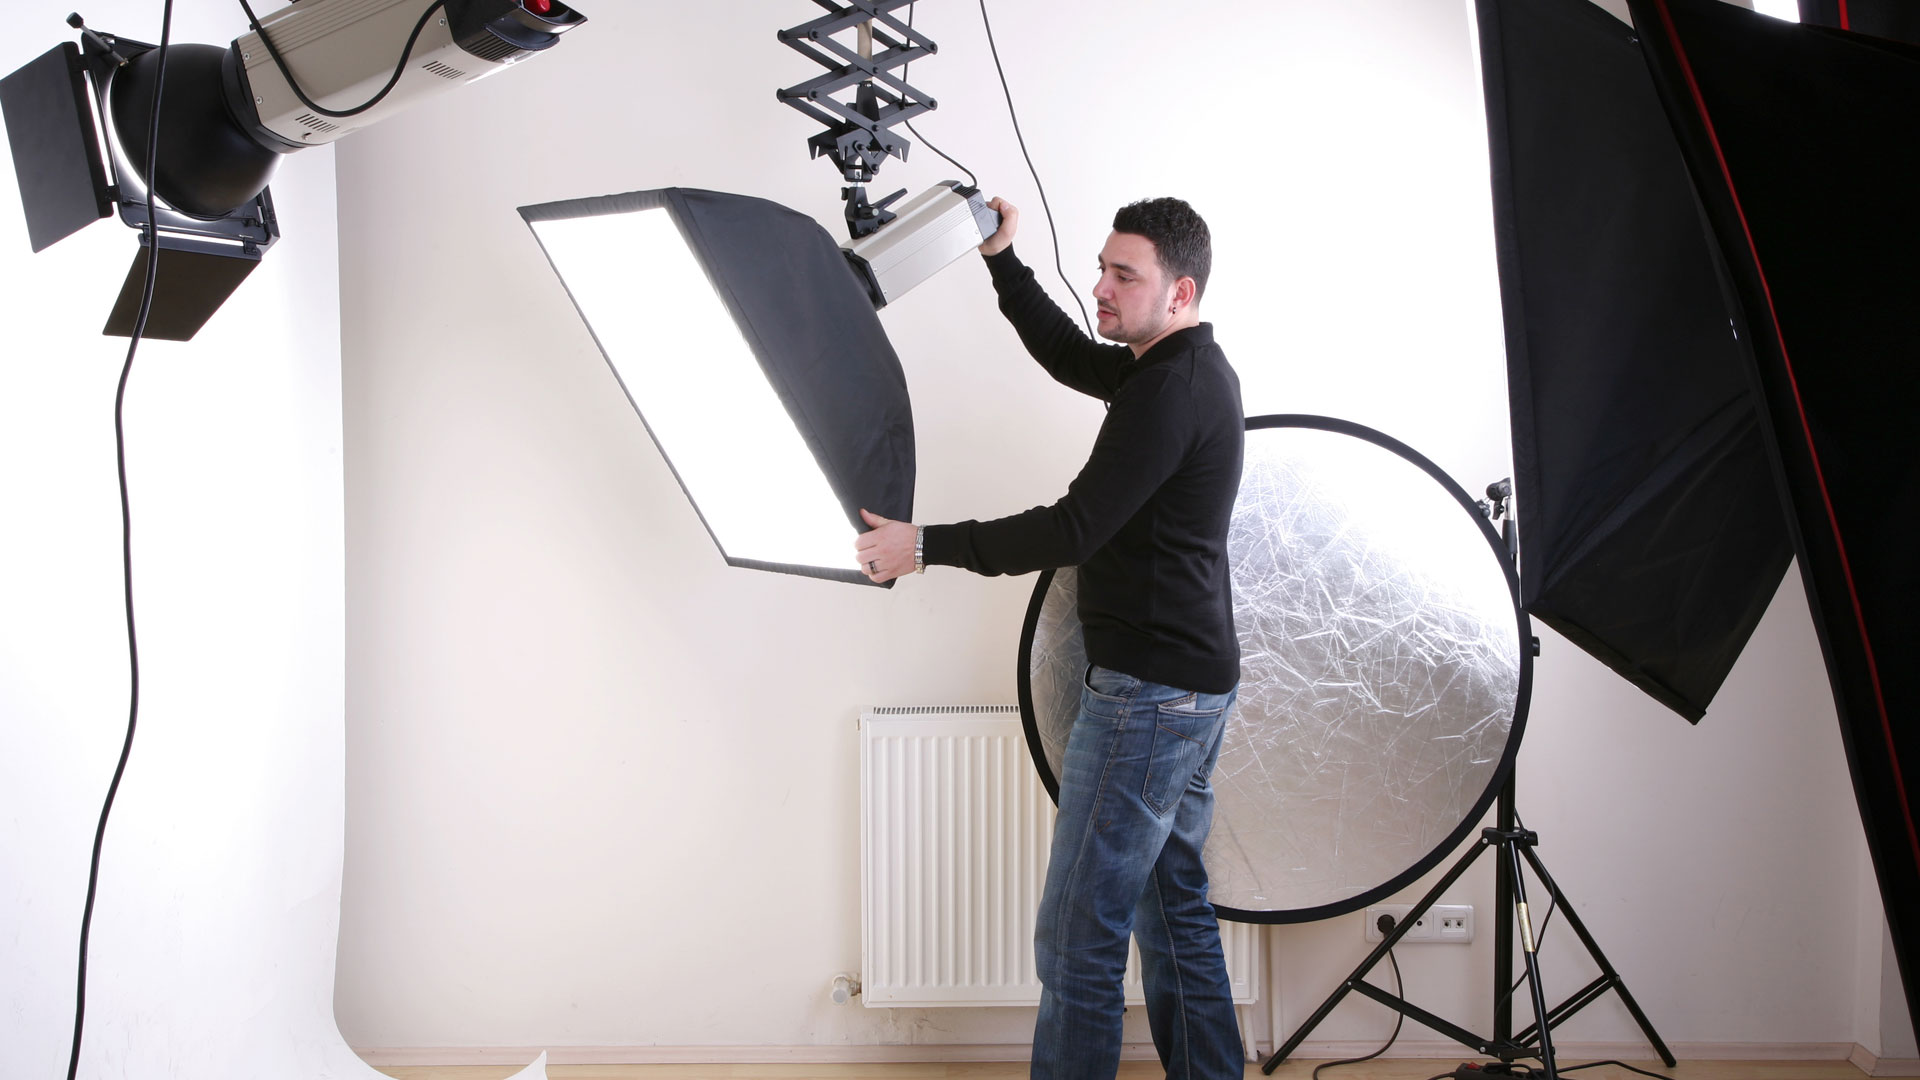 9 Considerations When Selecting a Product Photography Services Provider